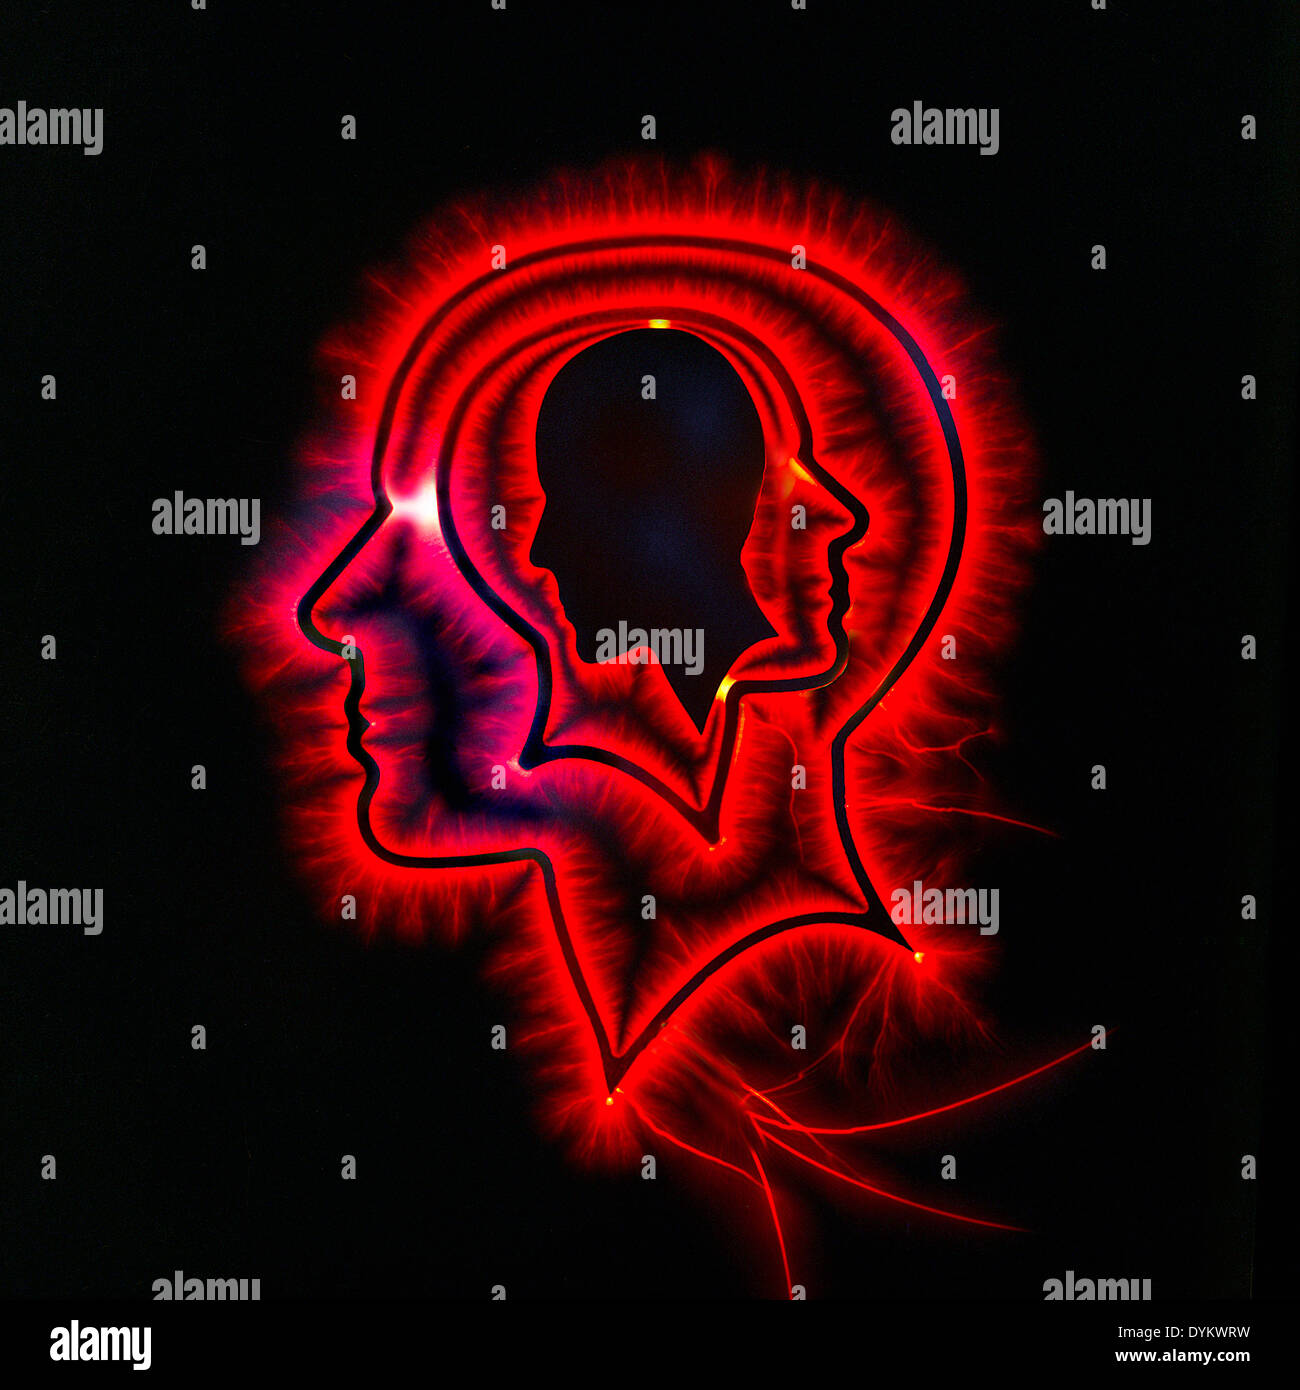 Photo illustration of head with red glow. - Stock Image